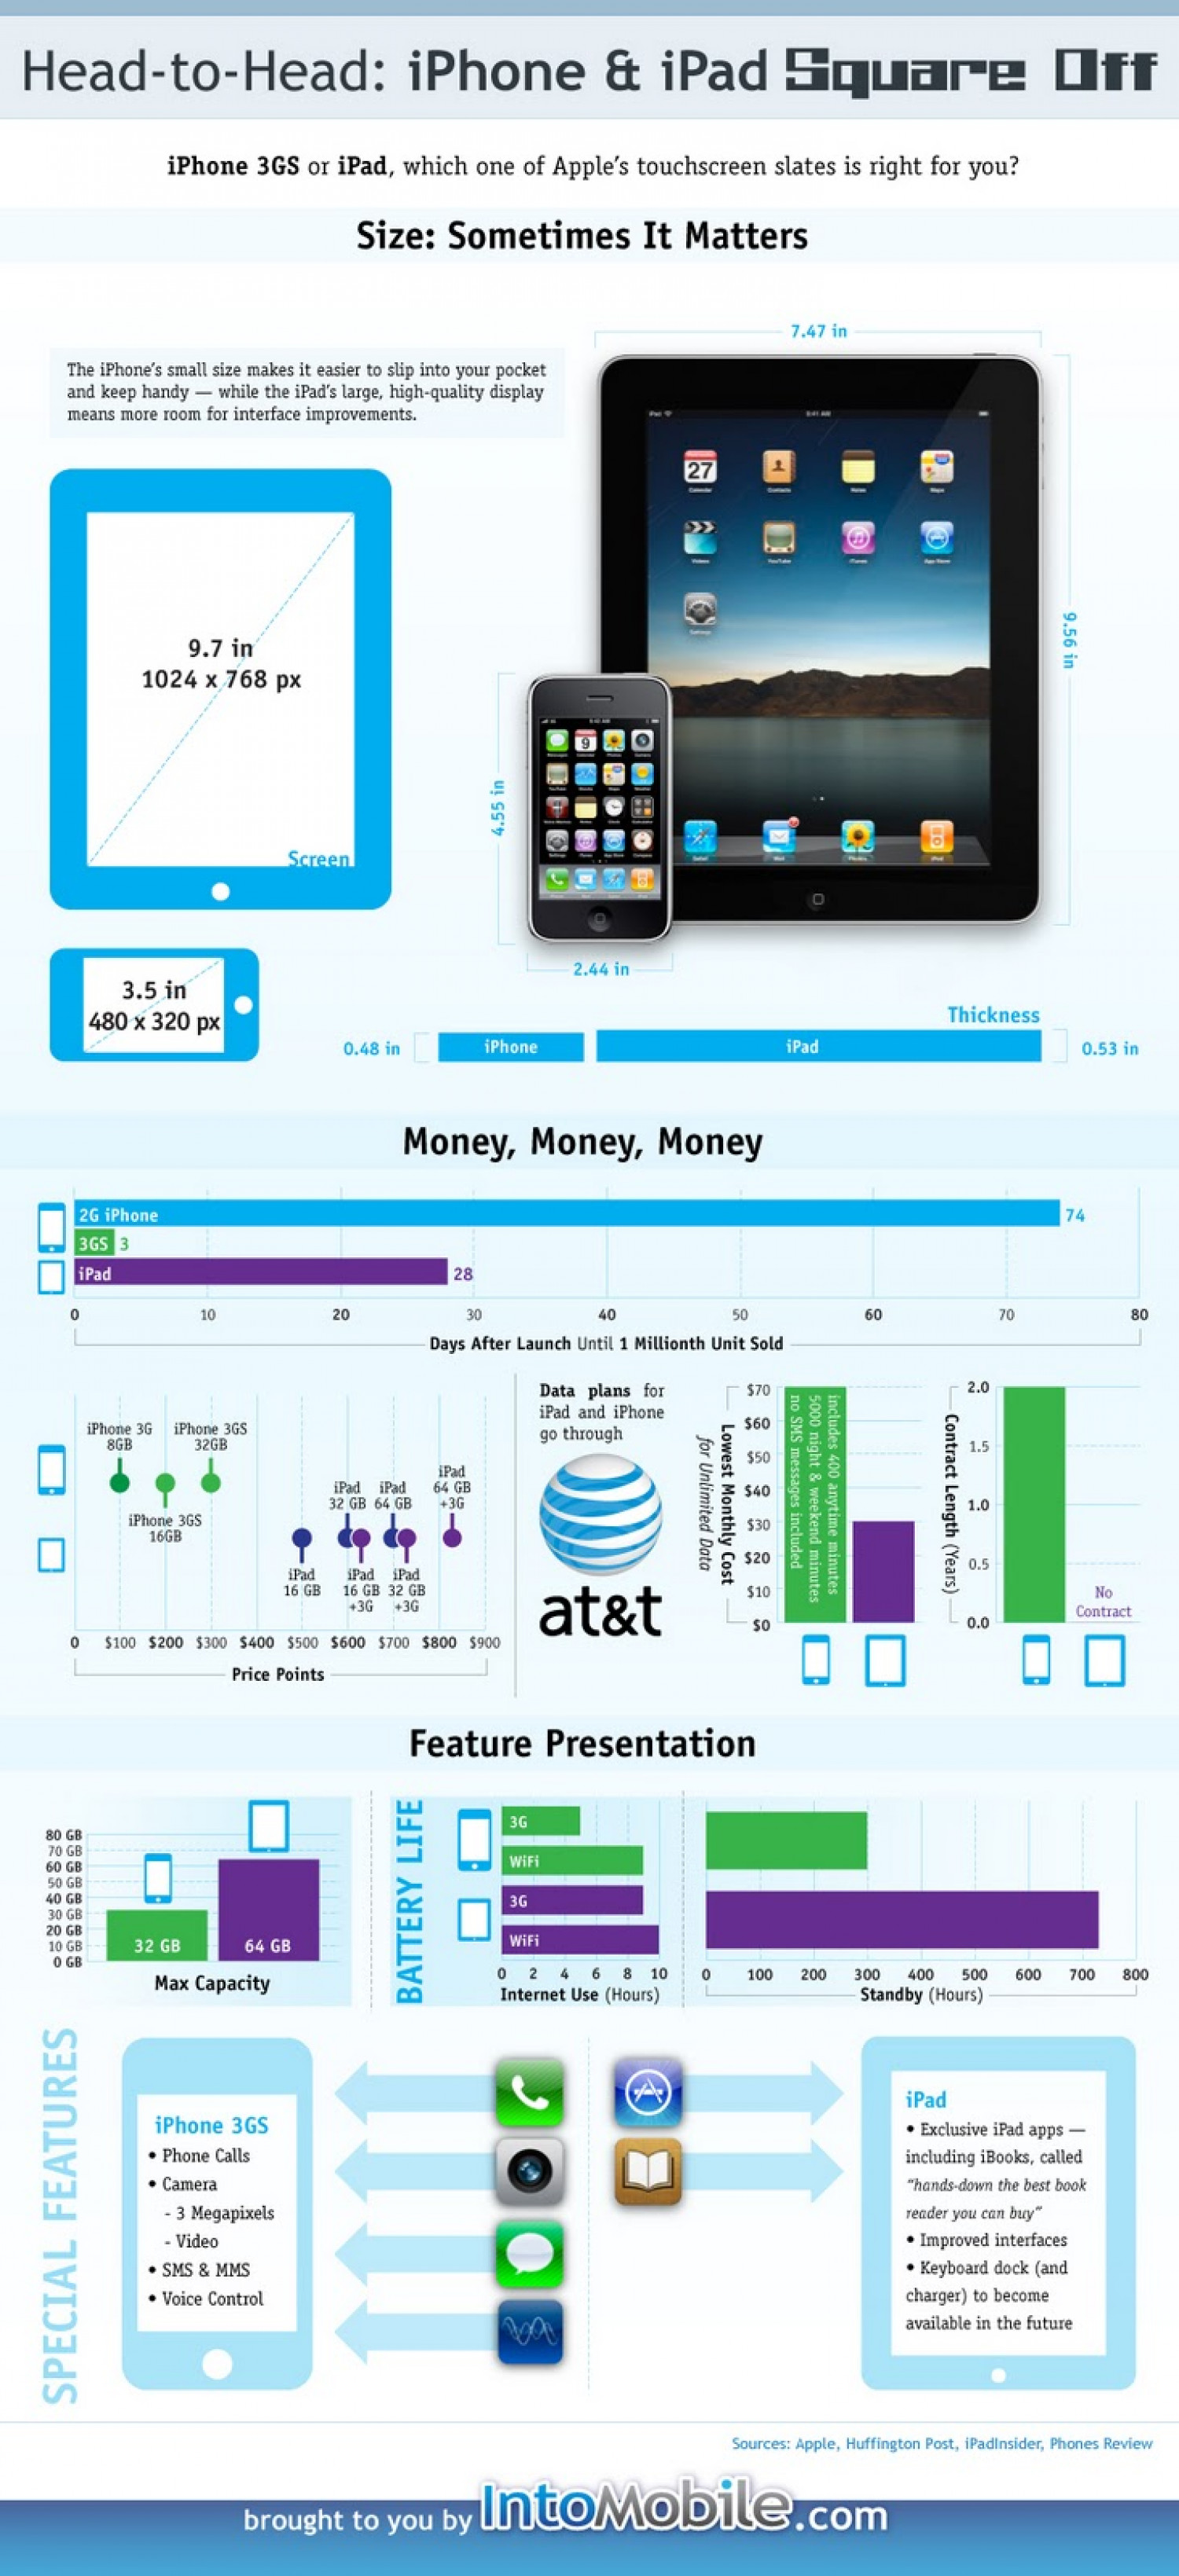 iPhone and iPad Square Off Infographic